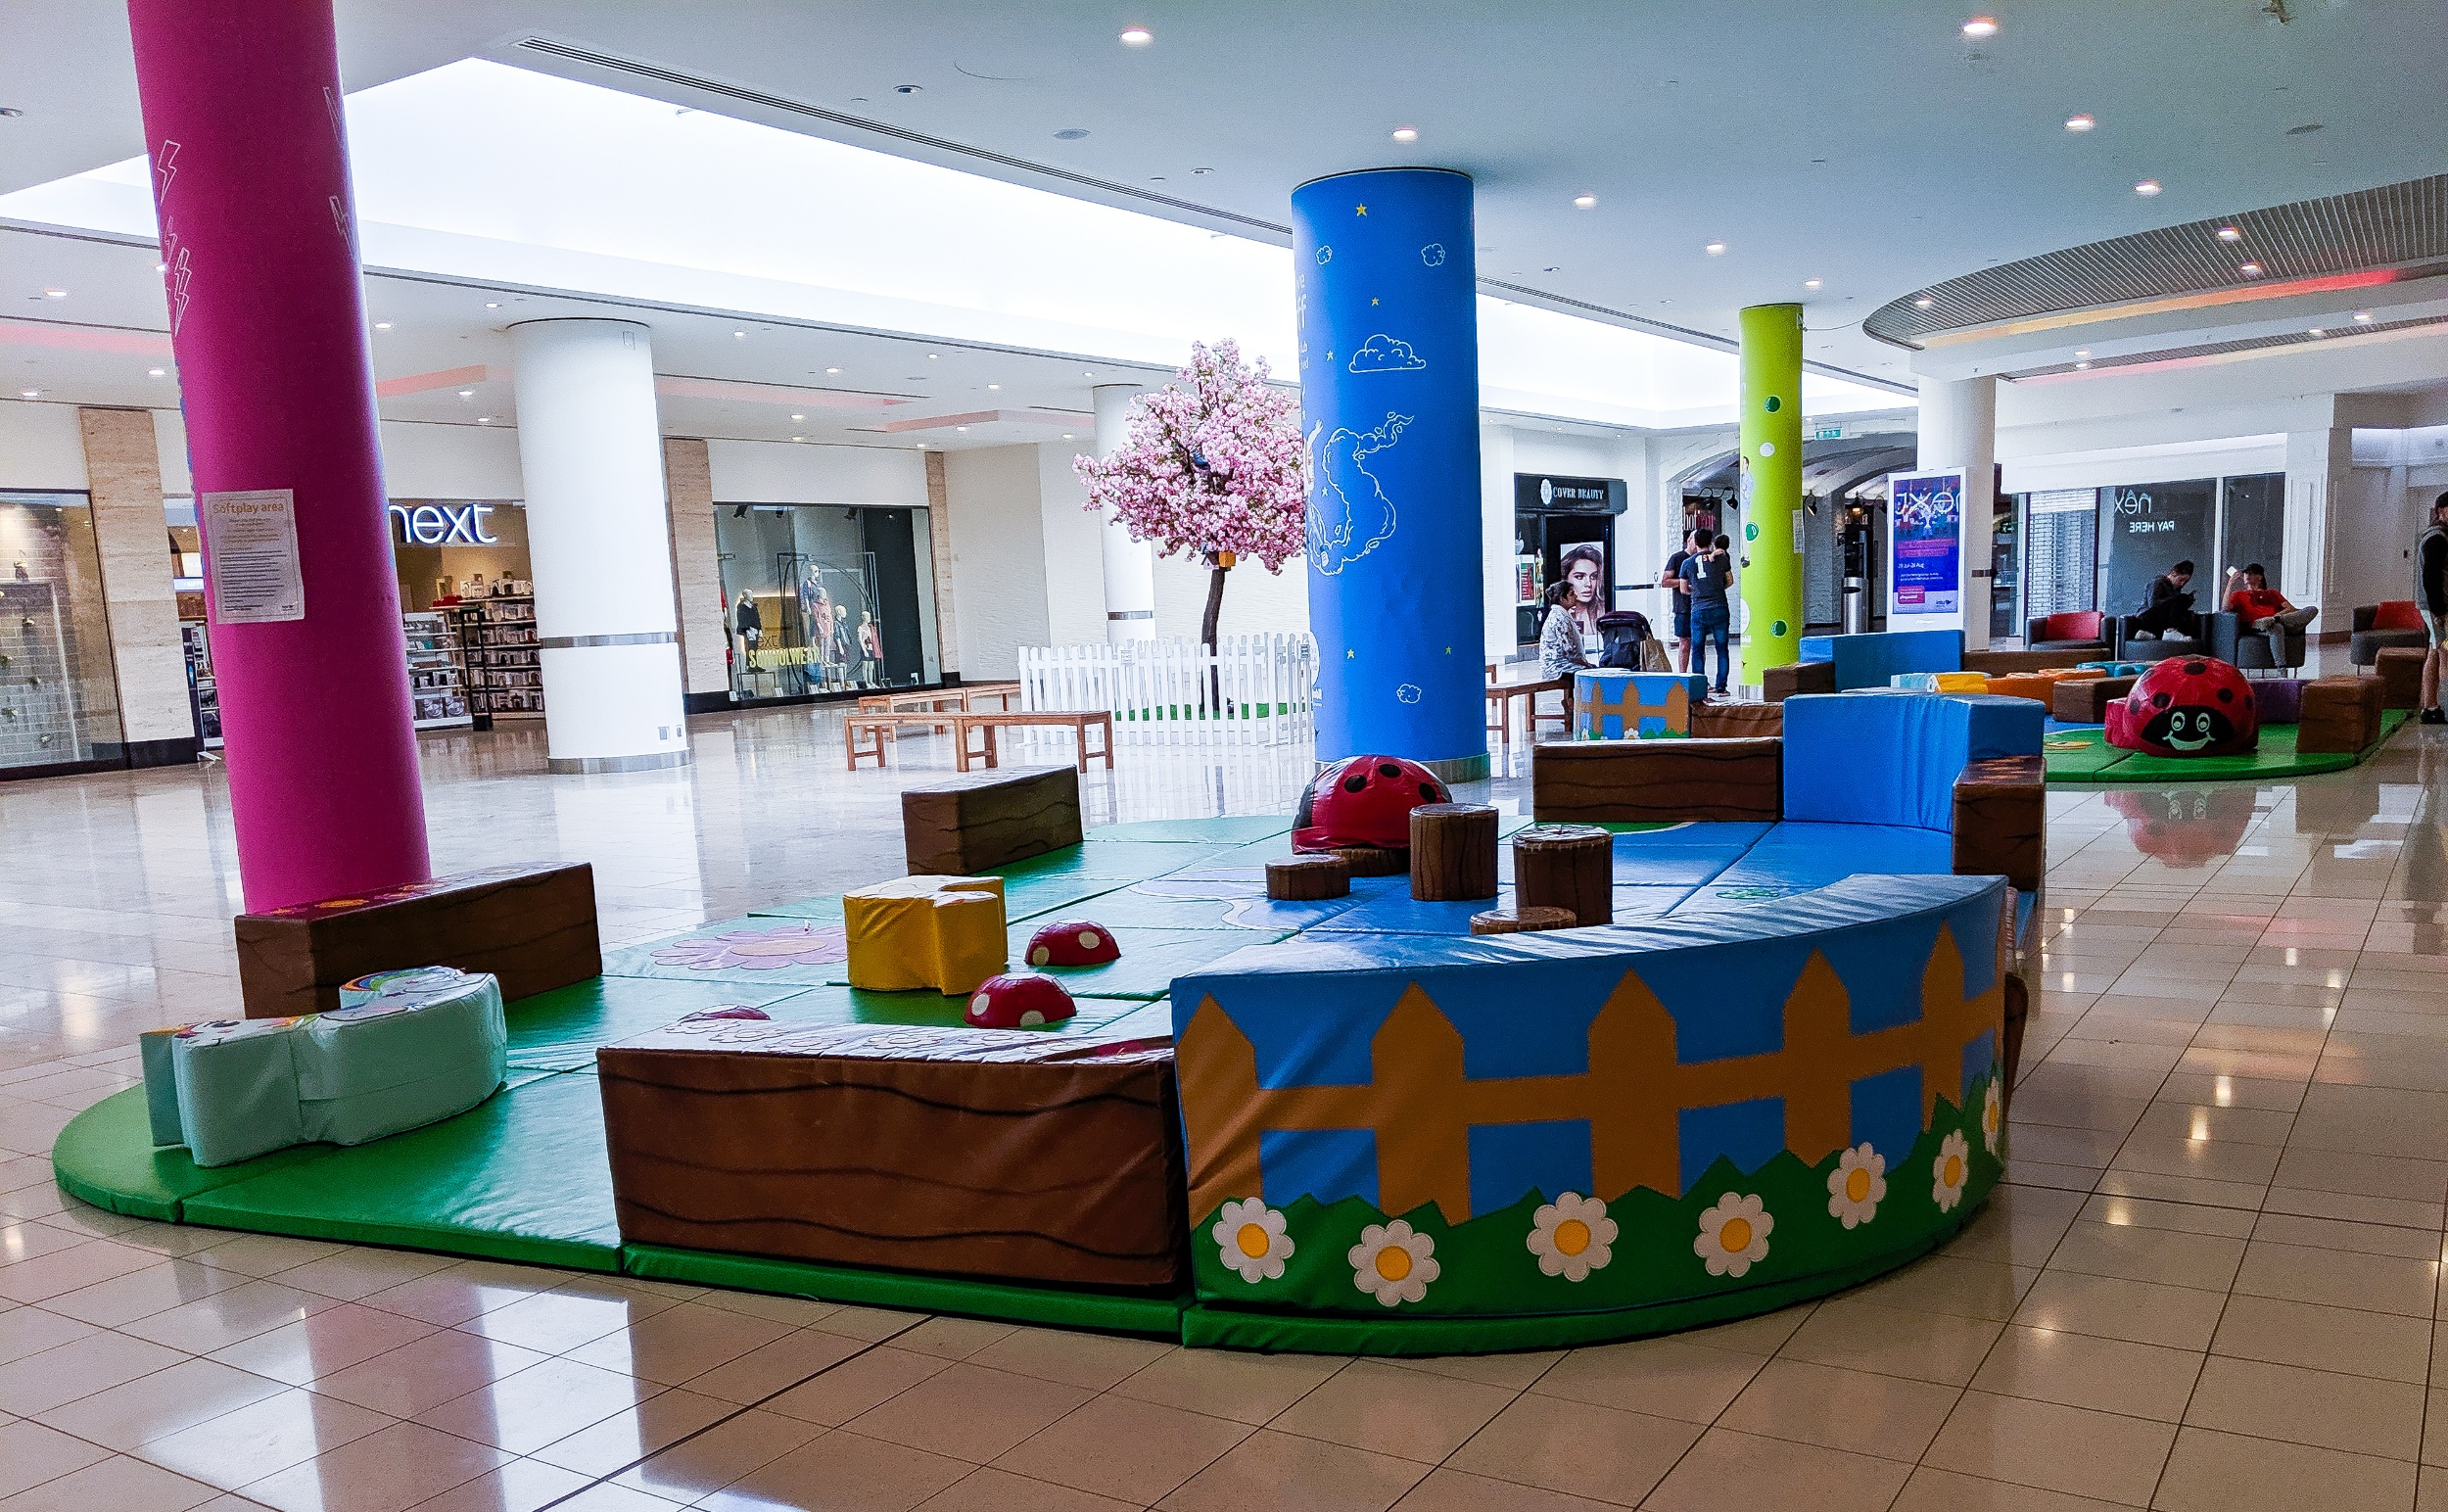 The free soft play at the Metrocentre